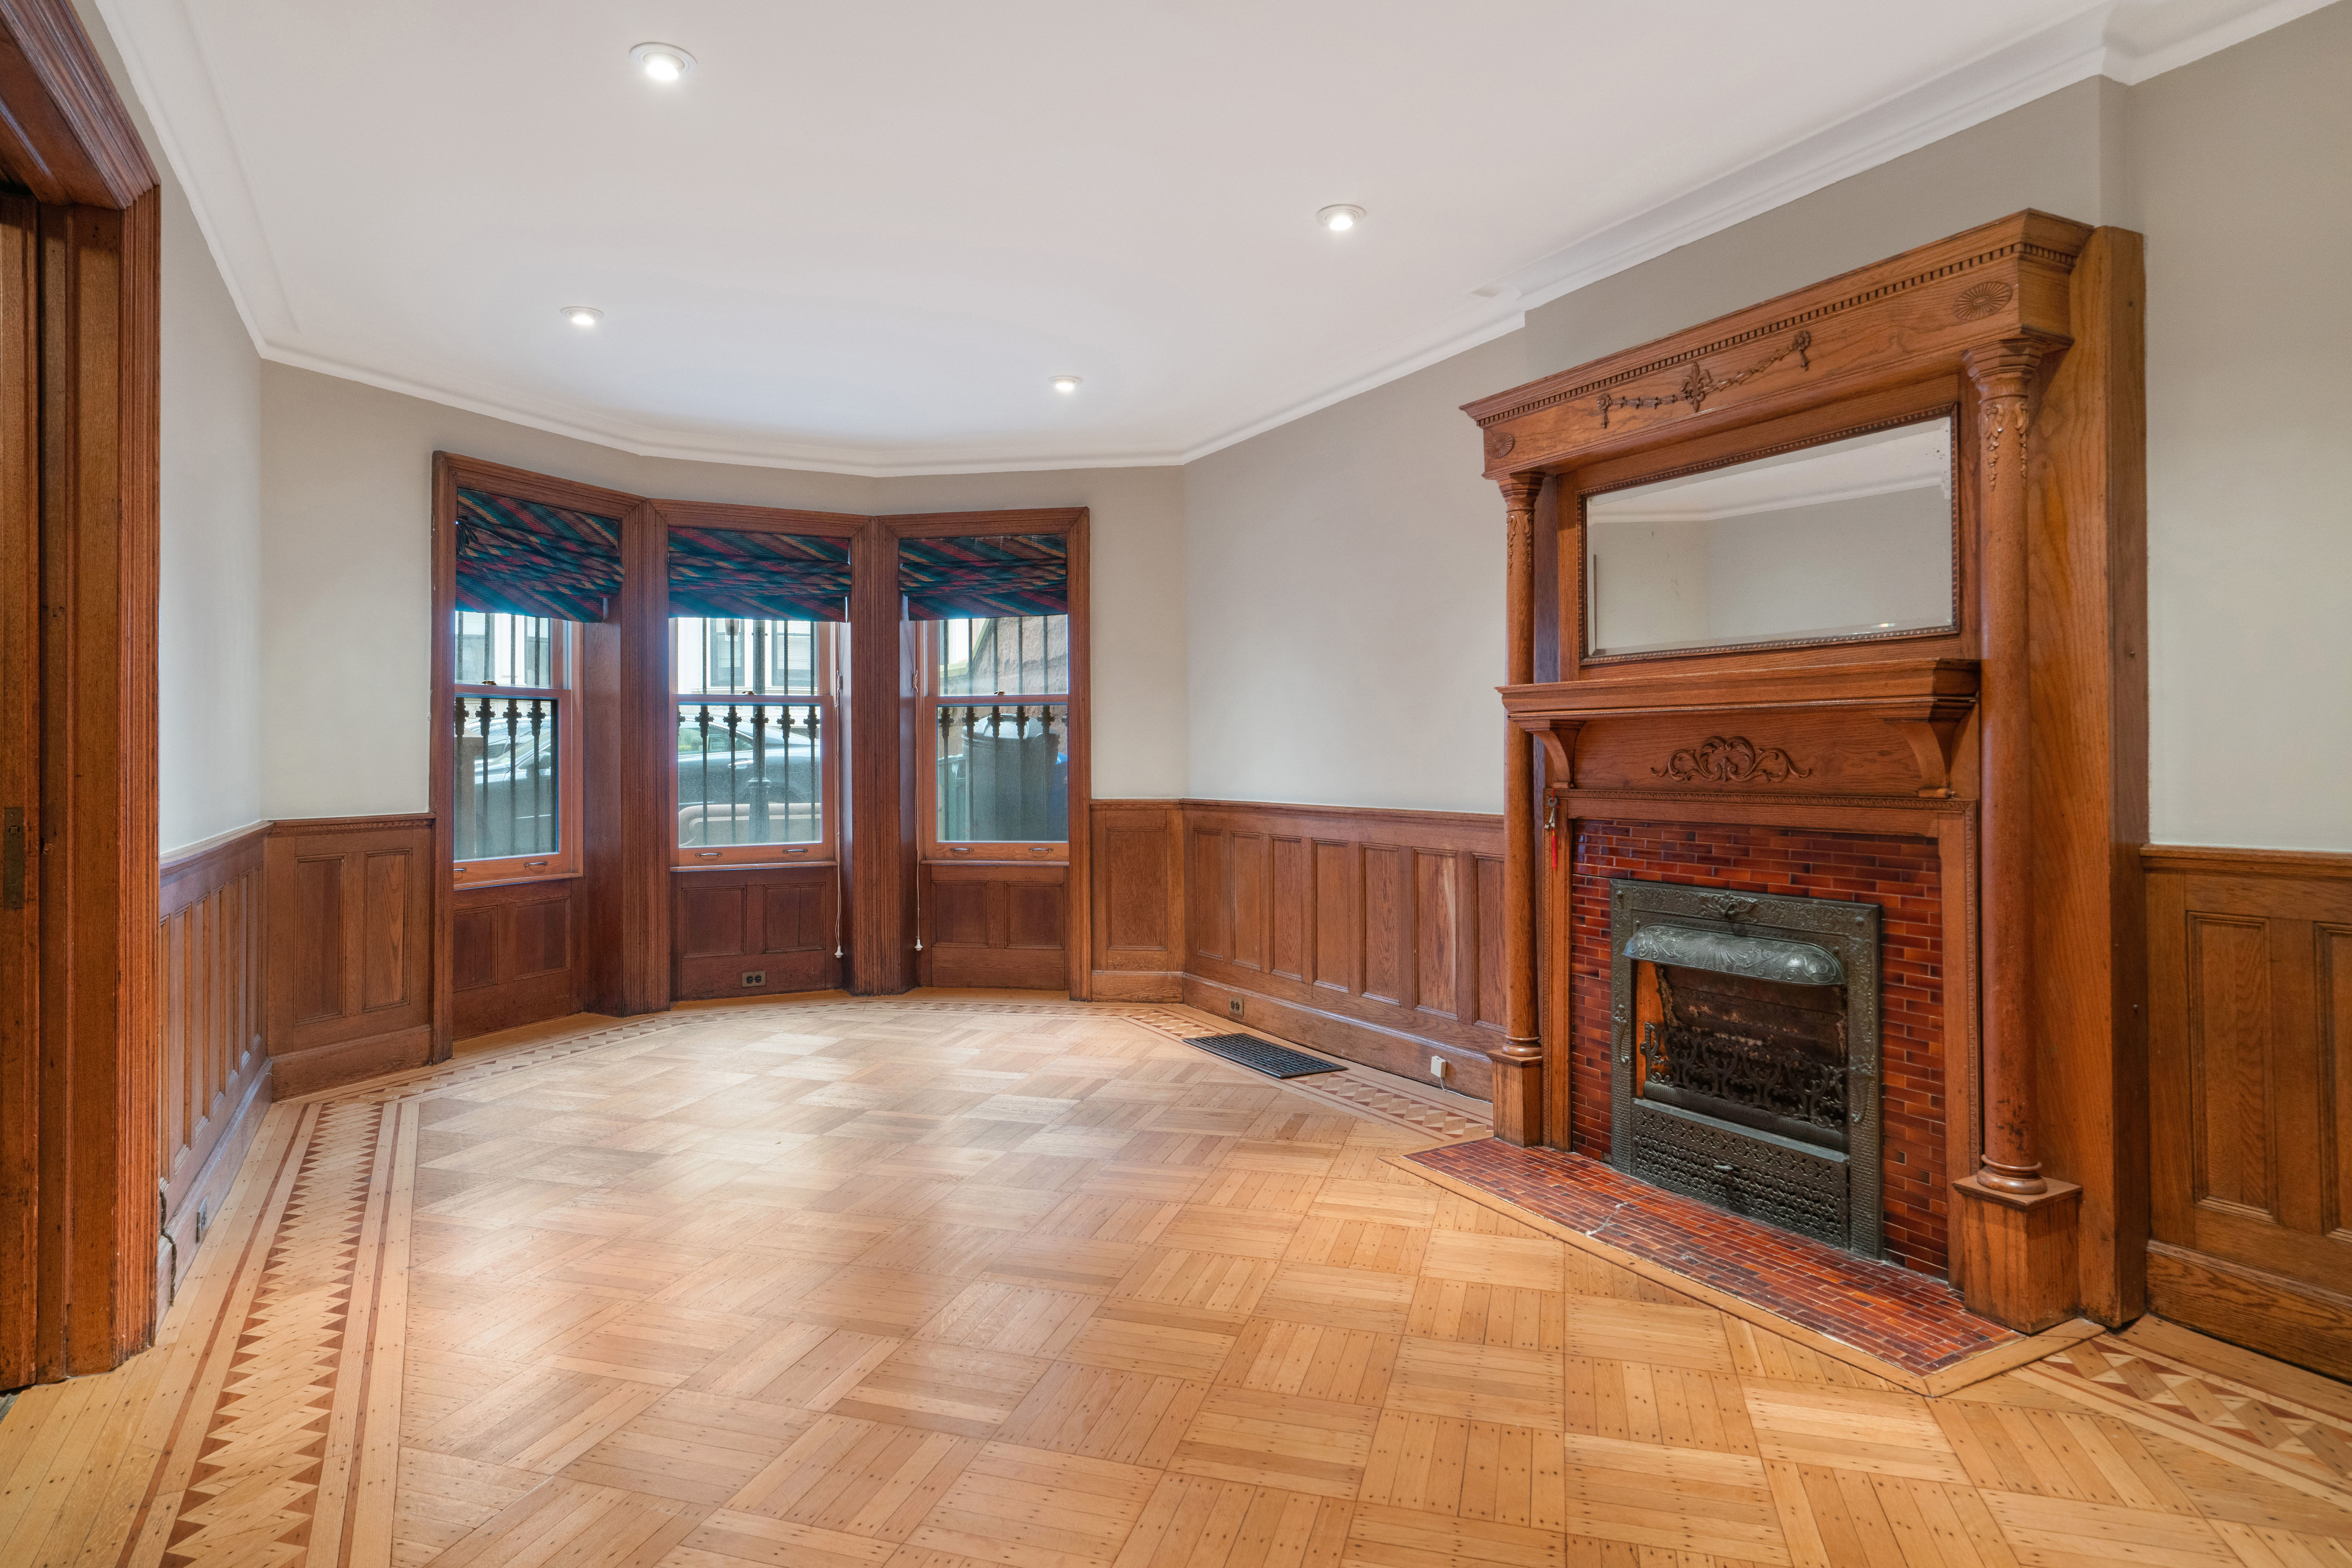 594 2nd St Photo 4 - BROWNSTONER-LISTING-47512a55ccfbbeb19b0a8fb315f62163